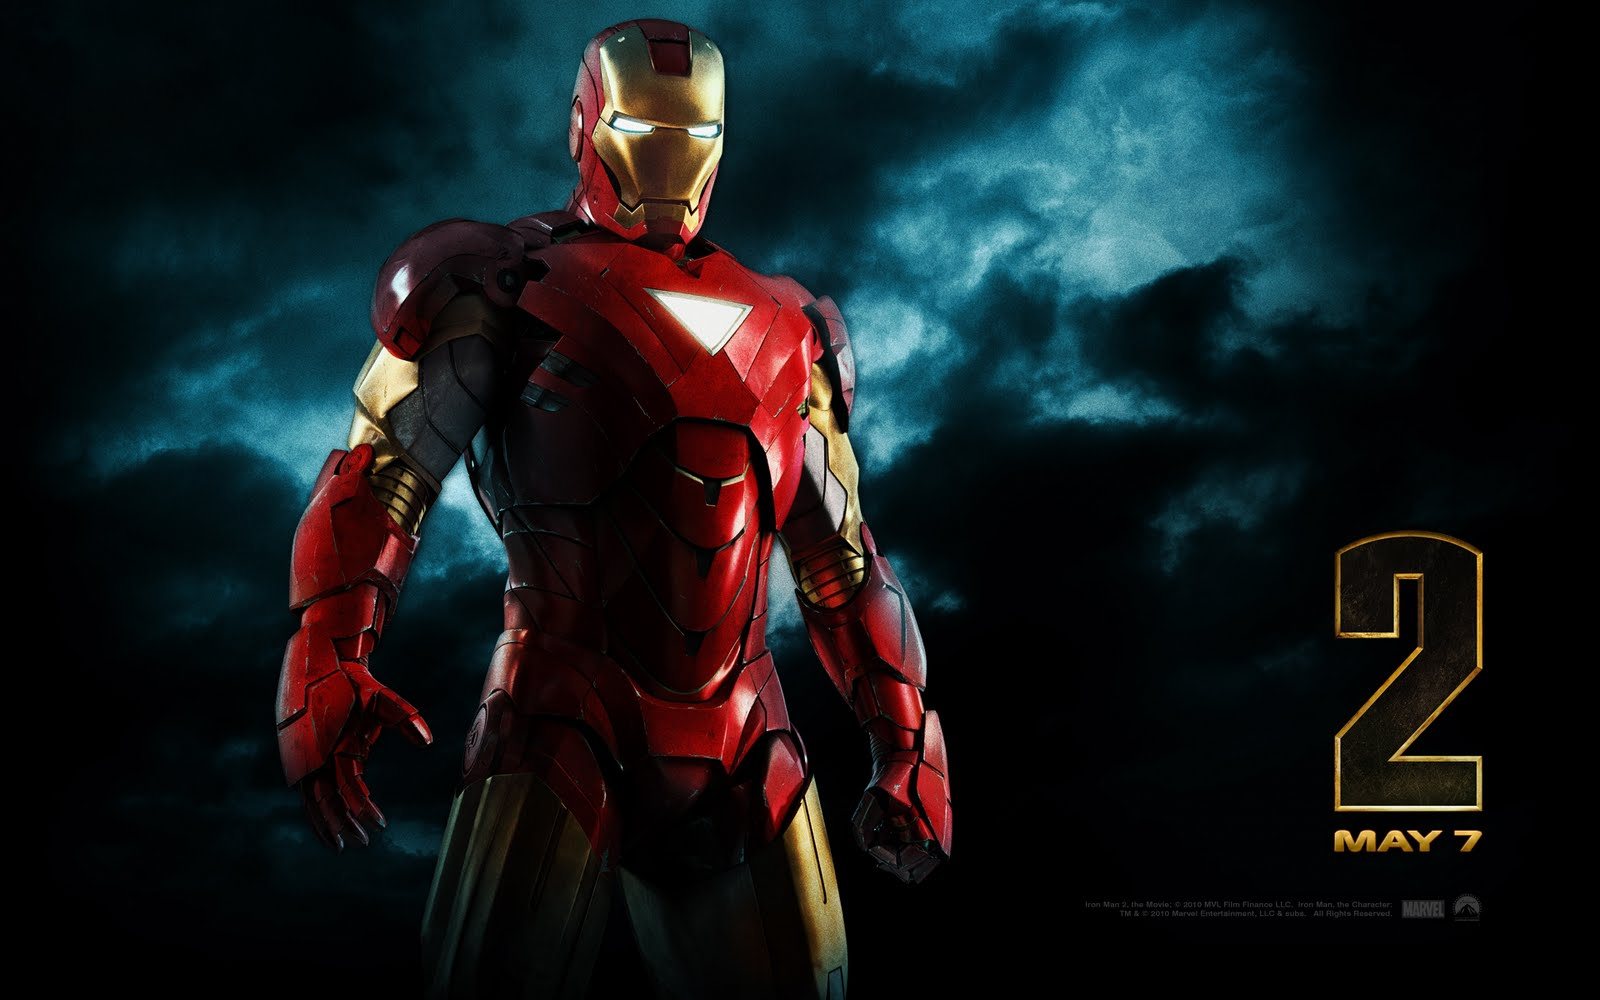 Iron Man 2 Movie Wallpaper : Teaser Trailer